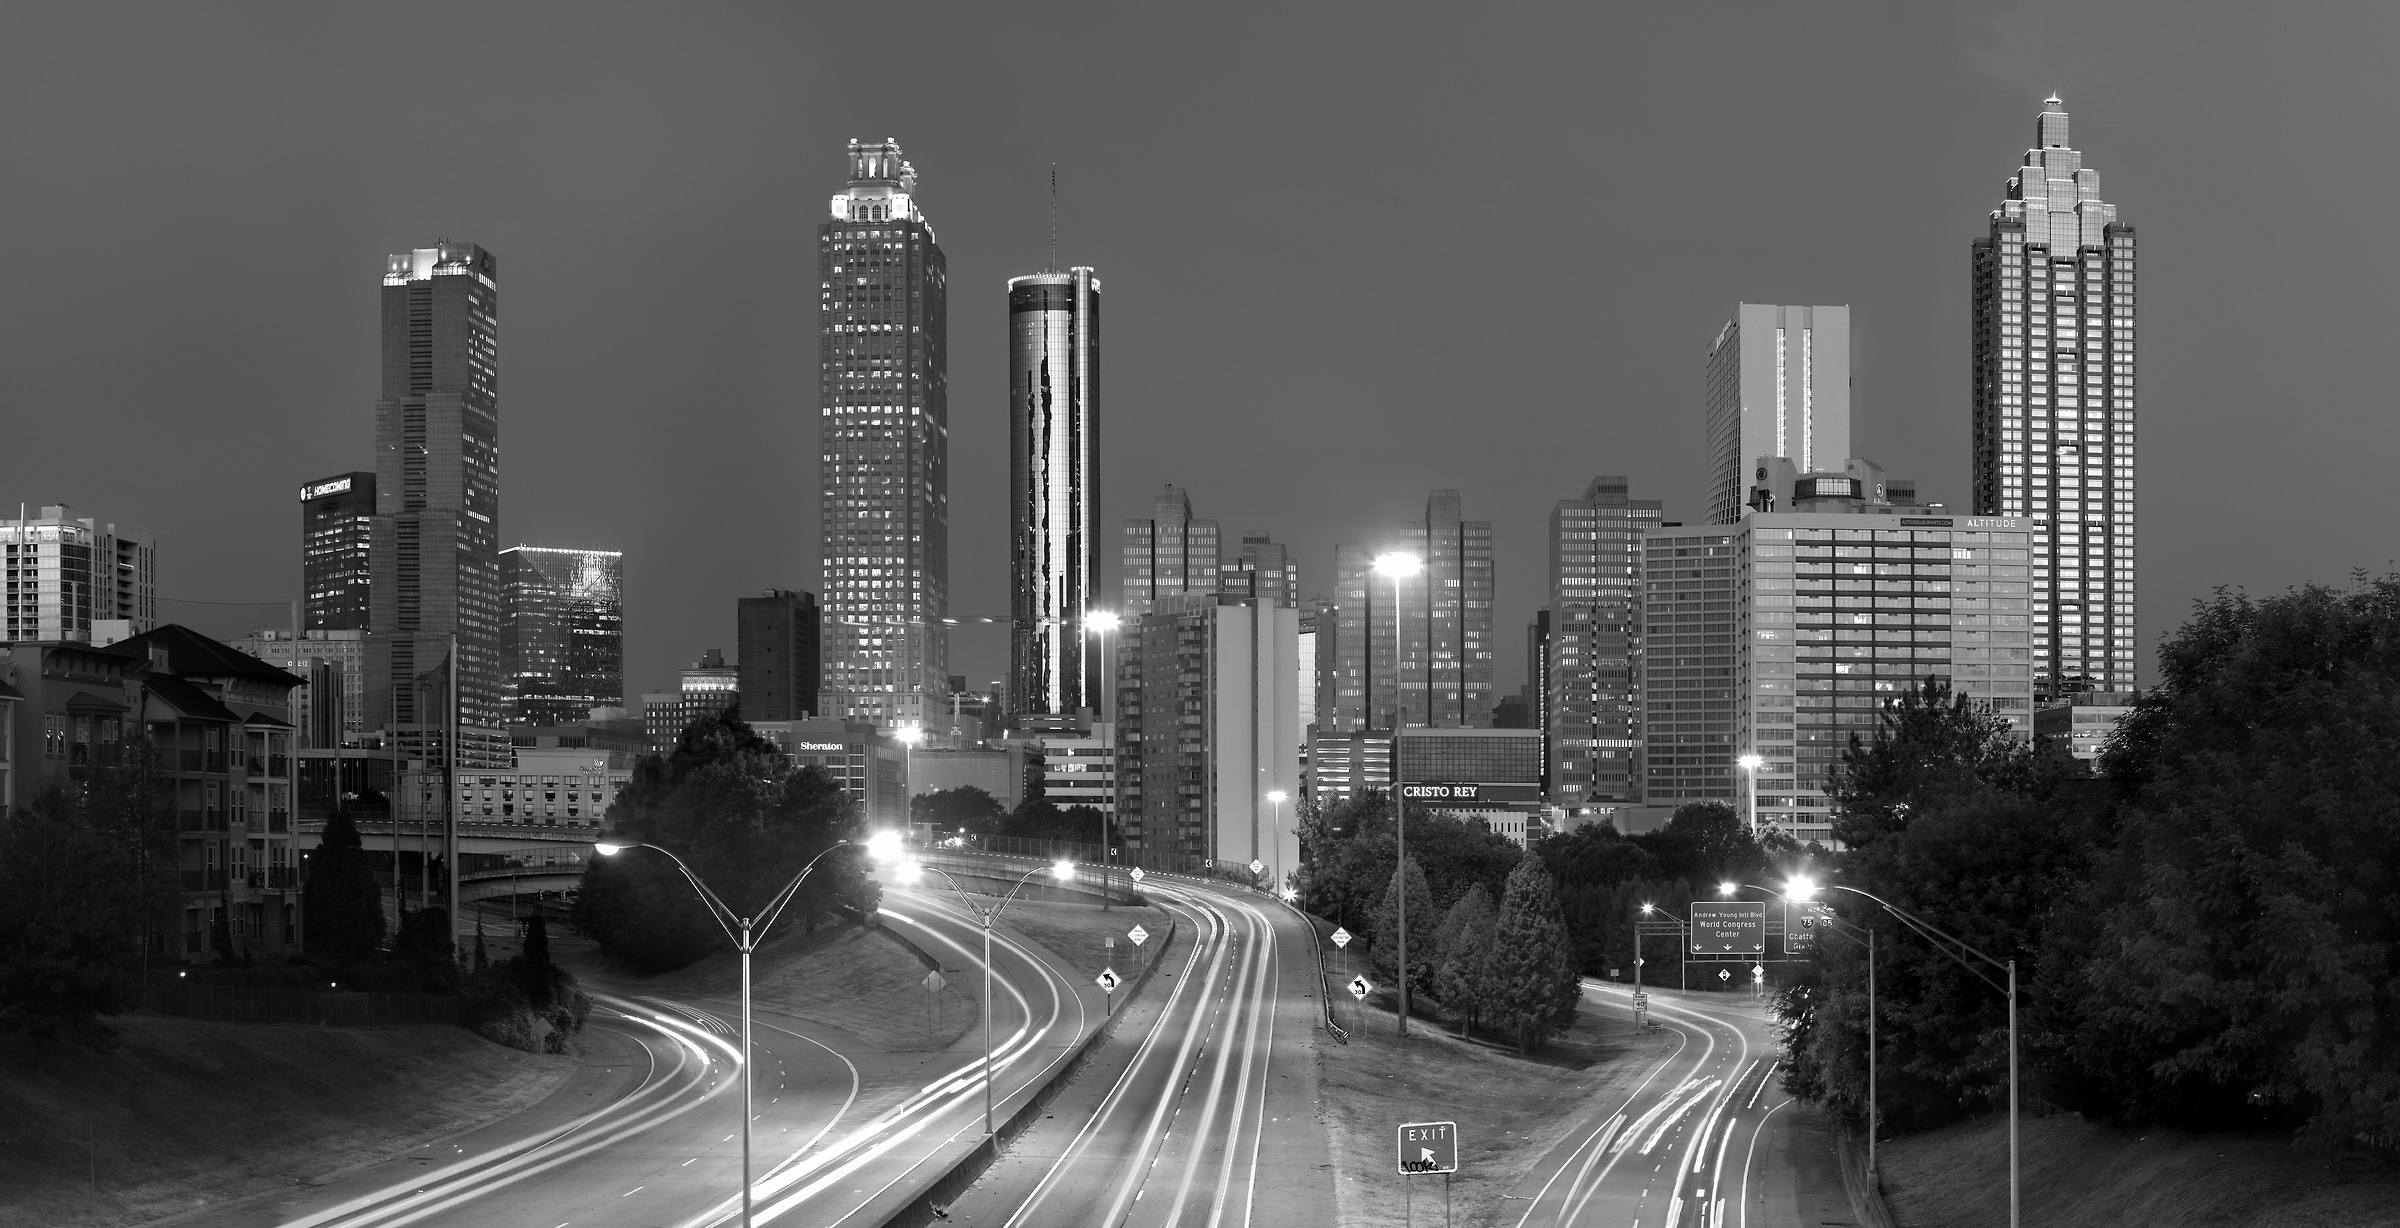 344 megapixels! A very high resolution, large-format VAST print of a black and white photo of Atlanta; photograph created by Phil Crawshay in Jackson Street Bridge, Atlanta Georgia